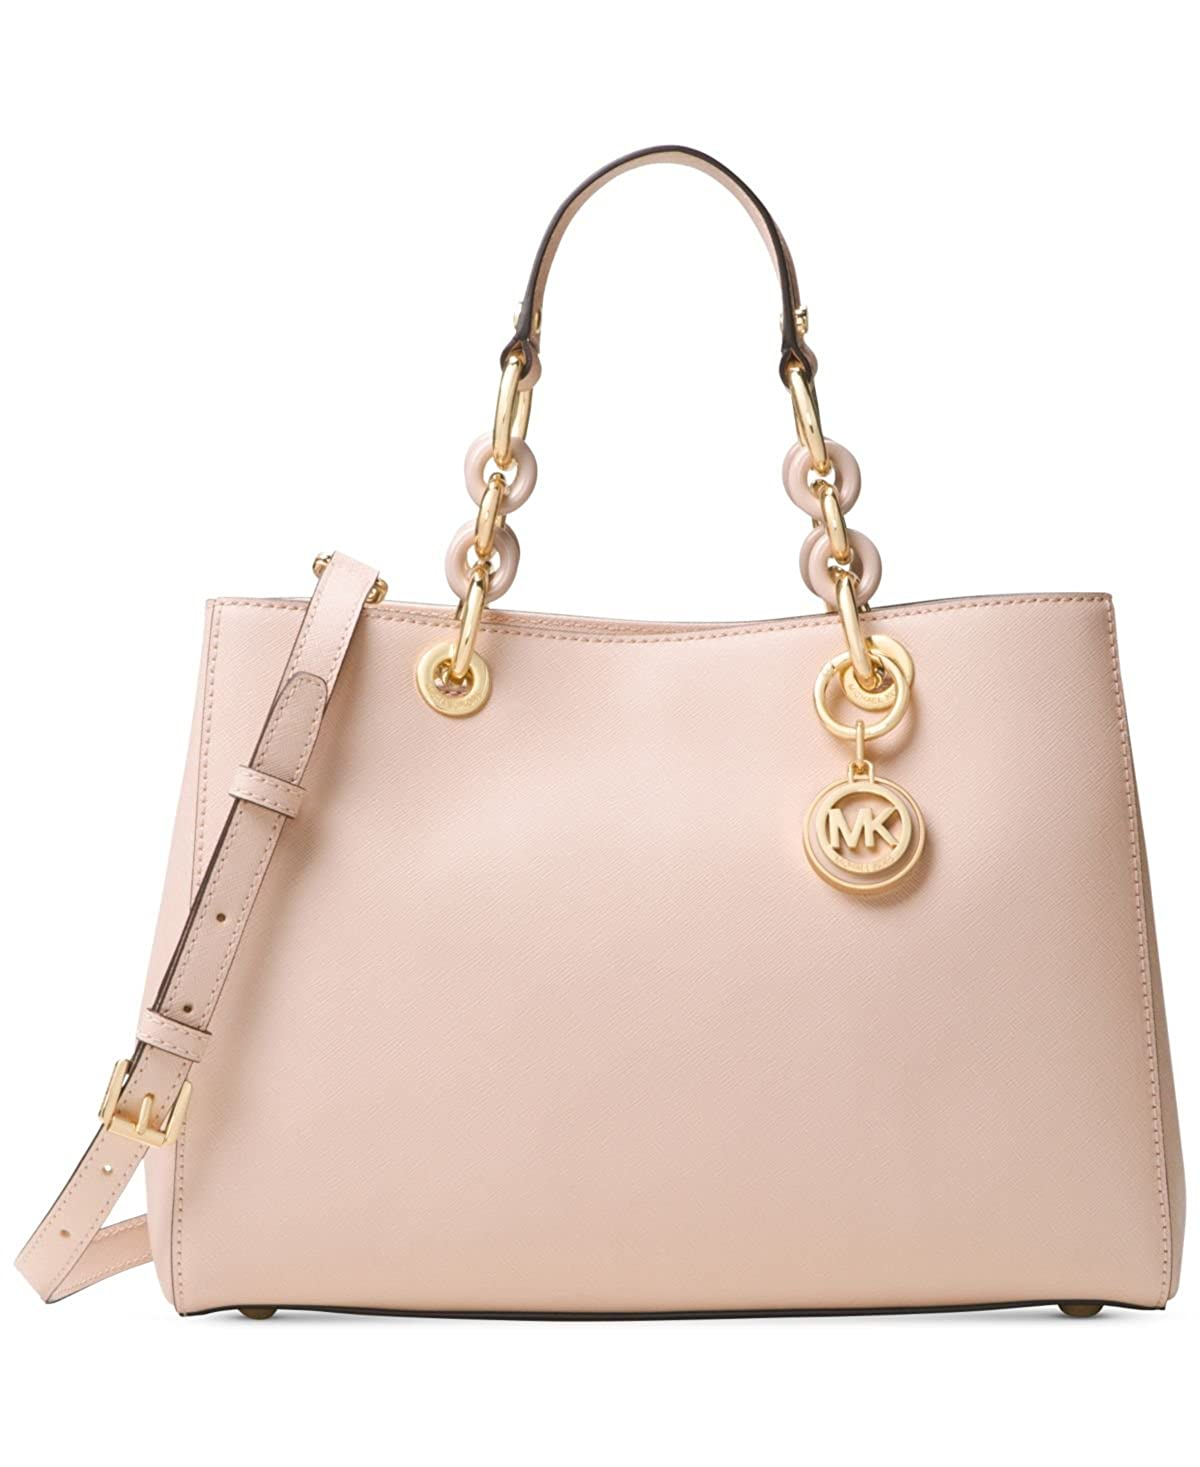 52668c90489b Amazon.com: MICHAEL Michael Kors Cynthia Small East West Satchel: Shoes